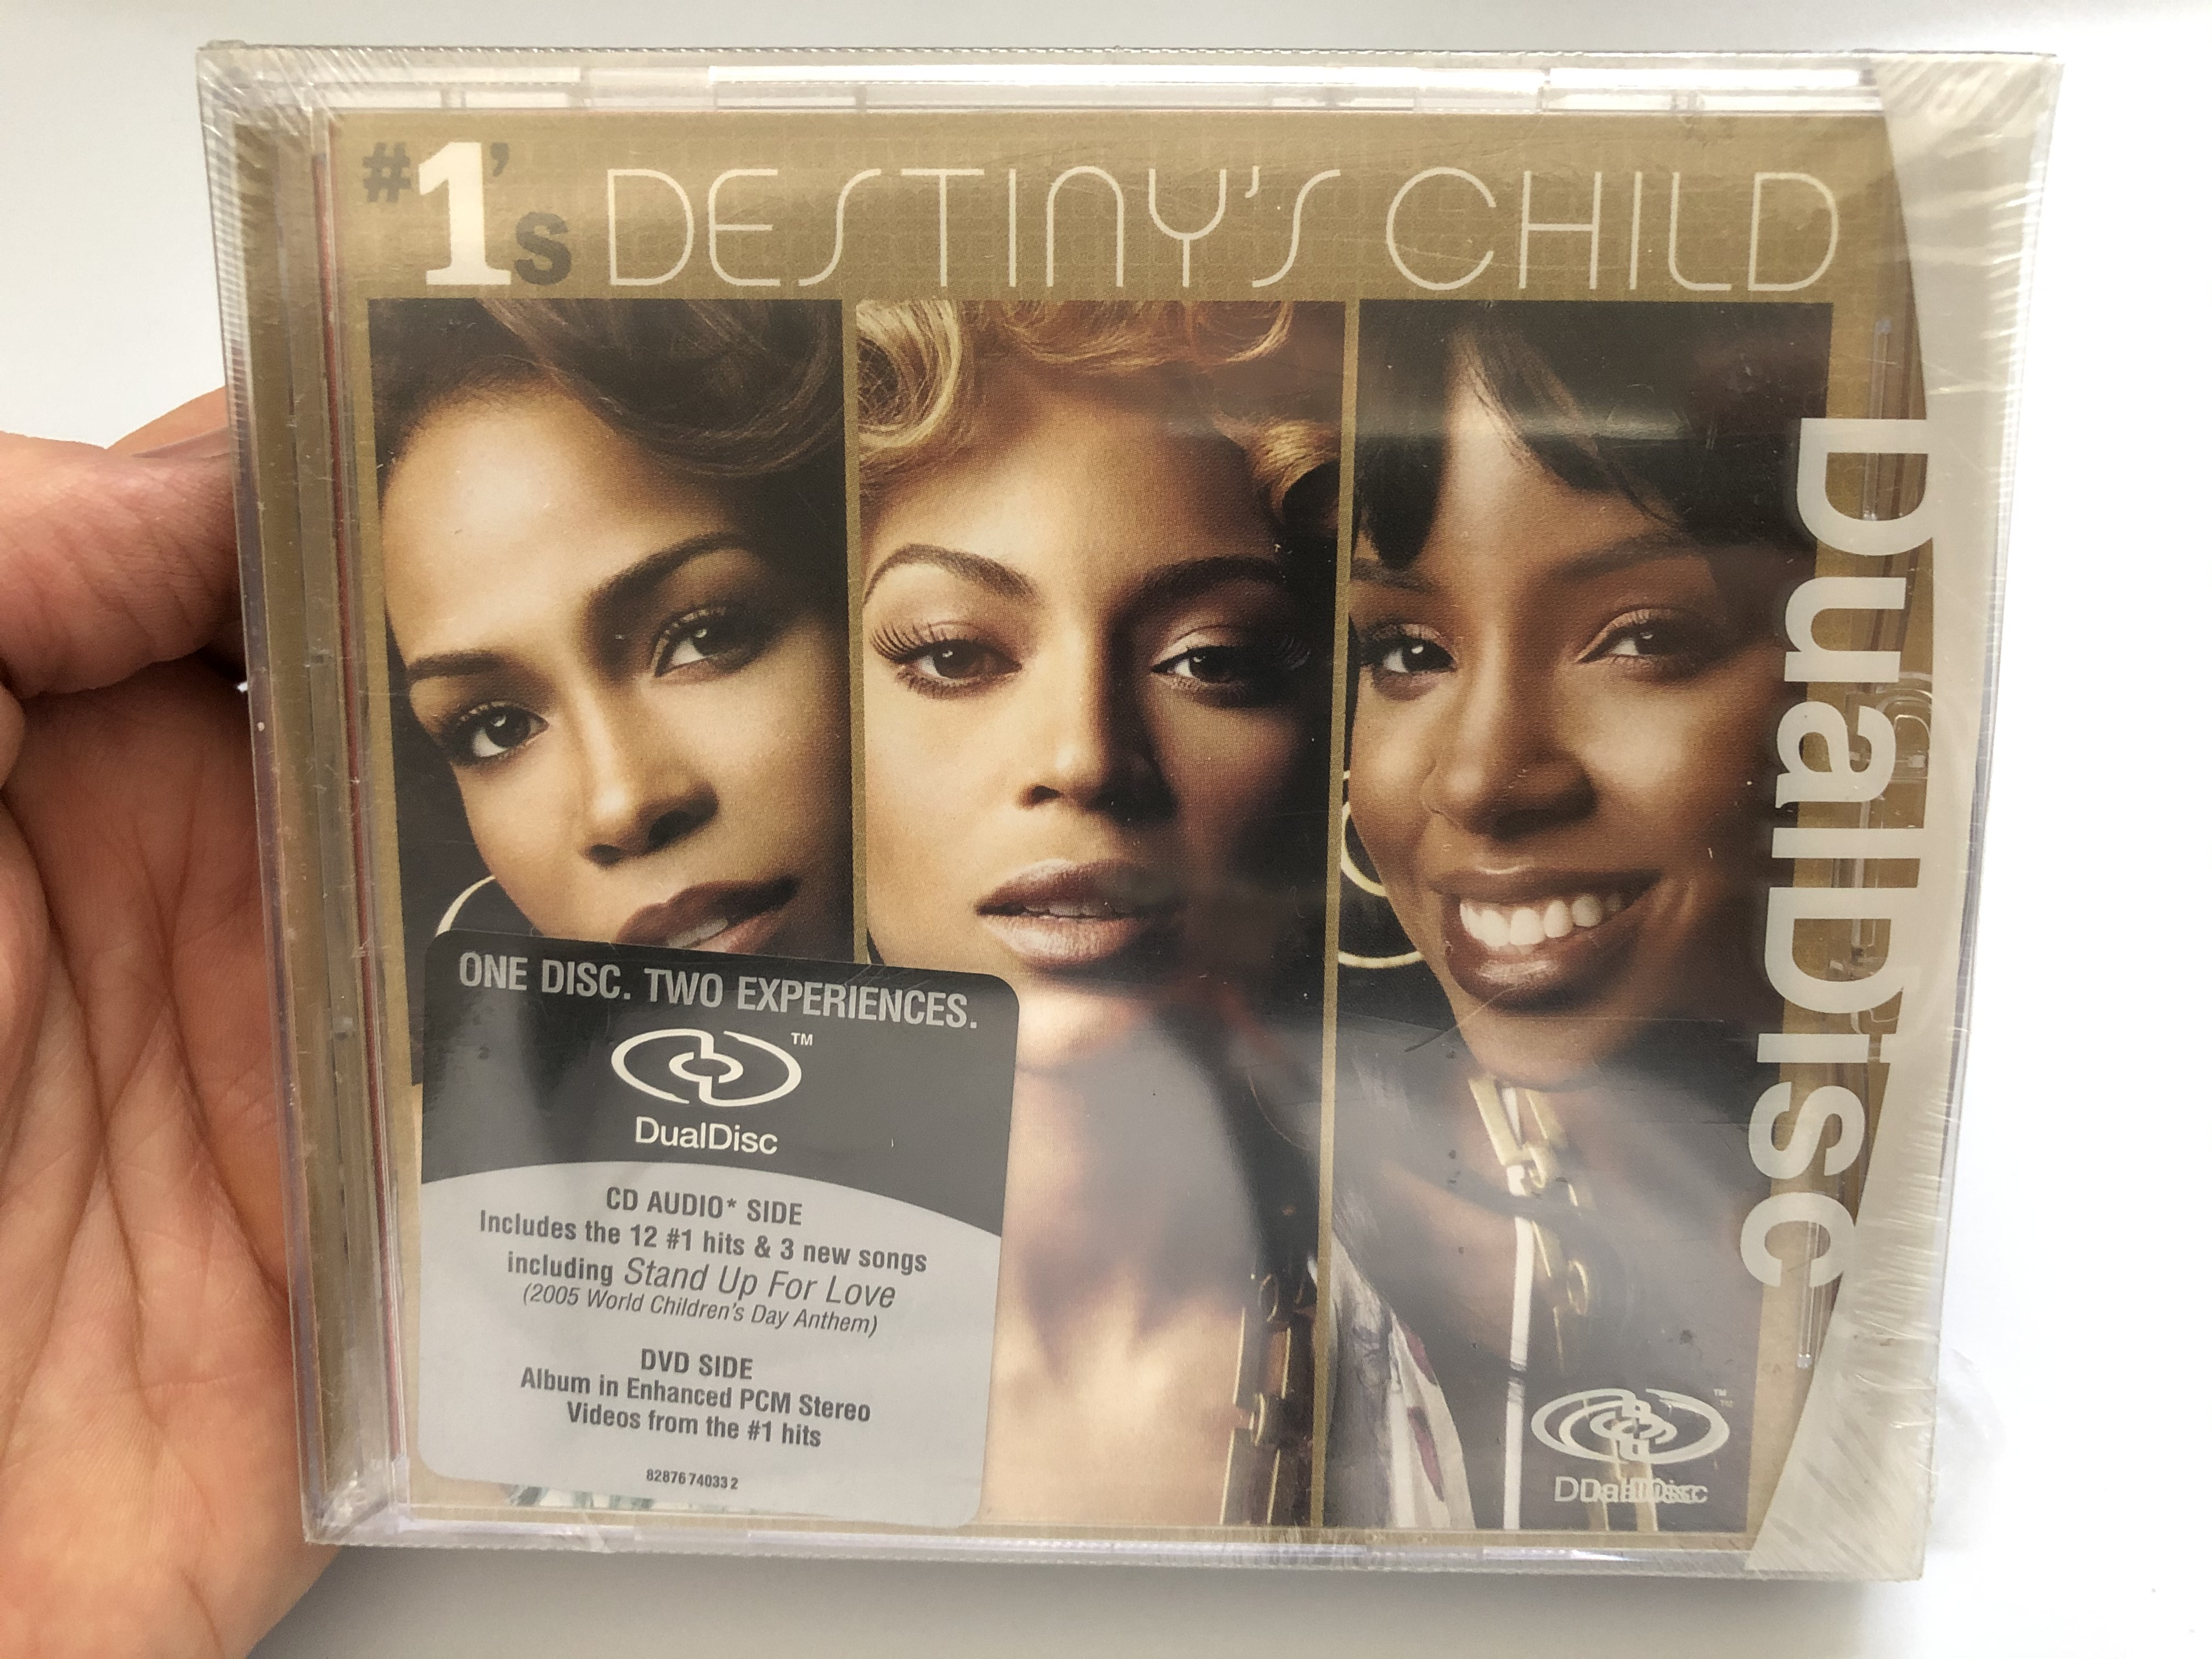 -1-s-destiny-s-child-dual-disc-one-disc-two-experiences-includes-the-12-1-hits-3-new-songs-including-stand-up-for-love-columbia-audio-cd-dvd-2005-82876740322-1-.jpg